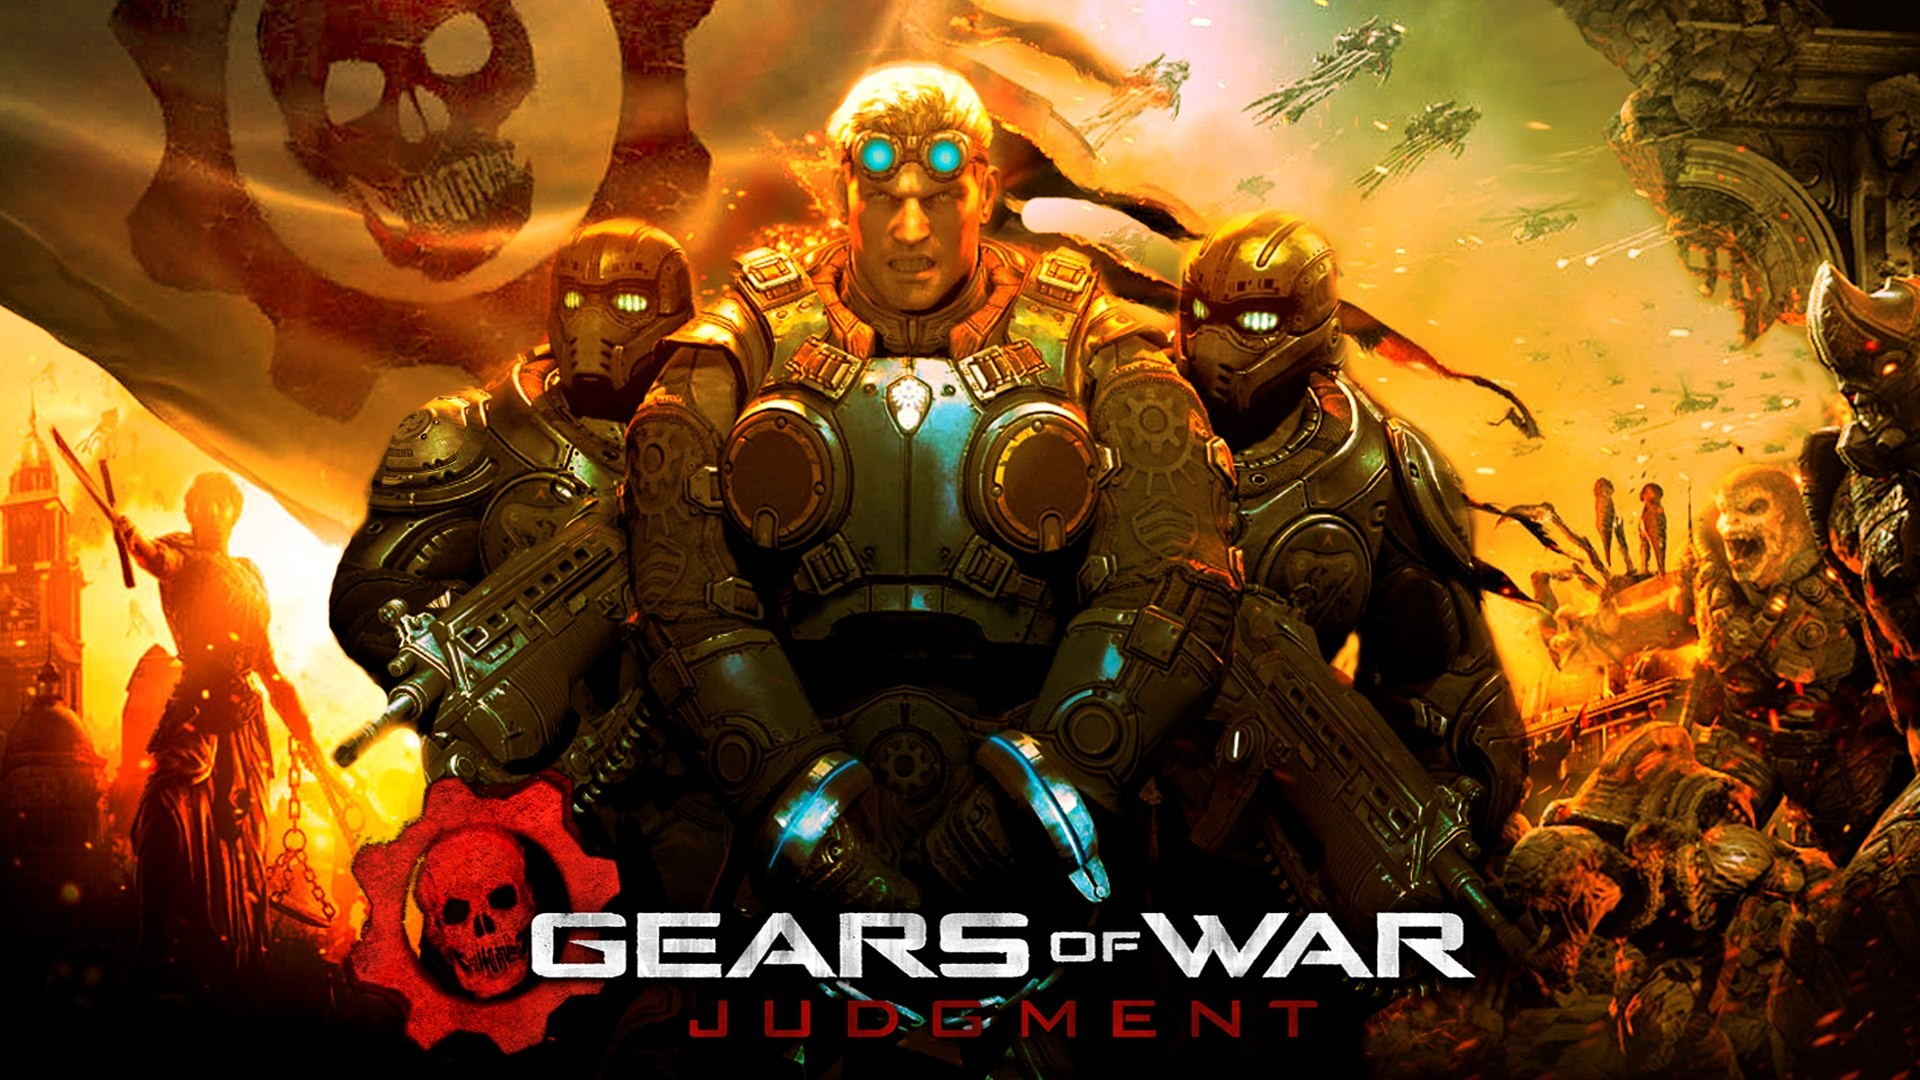 71 Gears Of War Judgement Wallpaper On Wallpapersafari